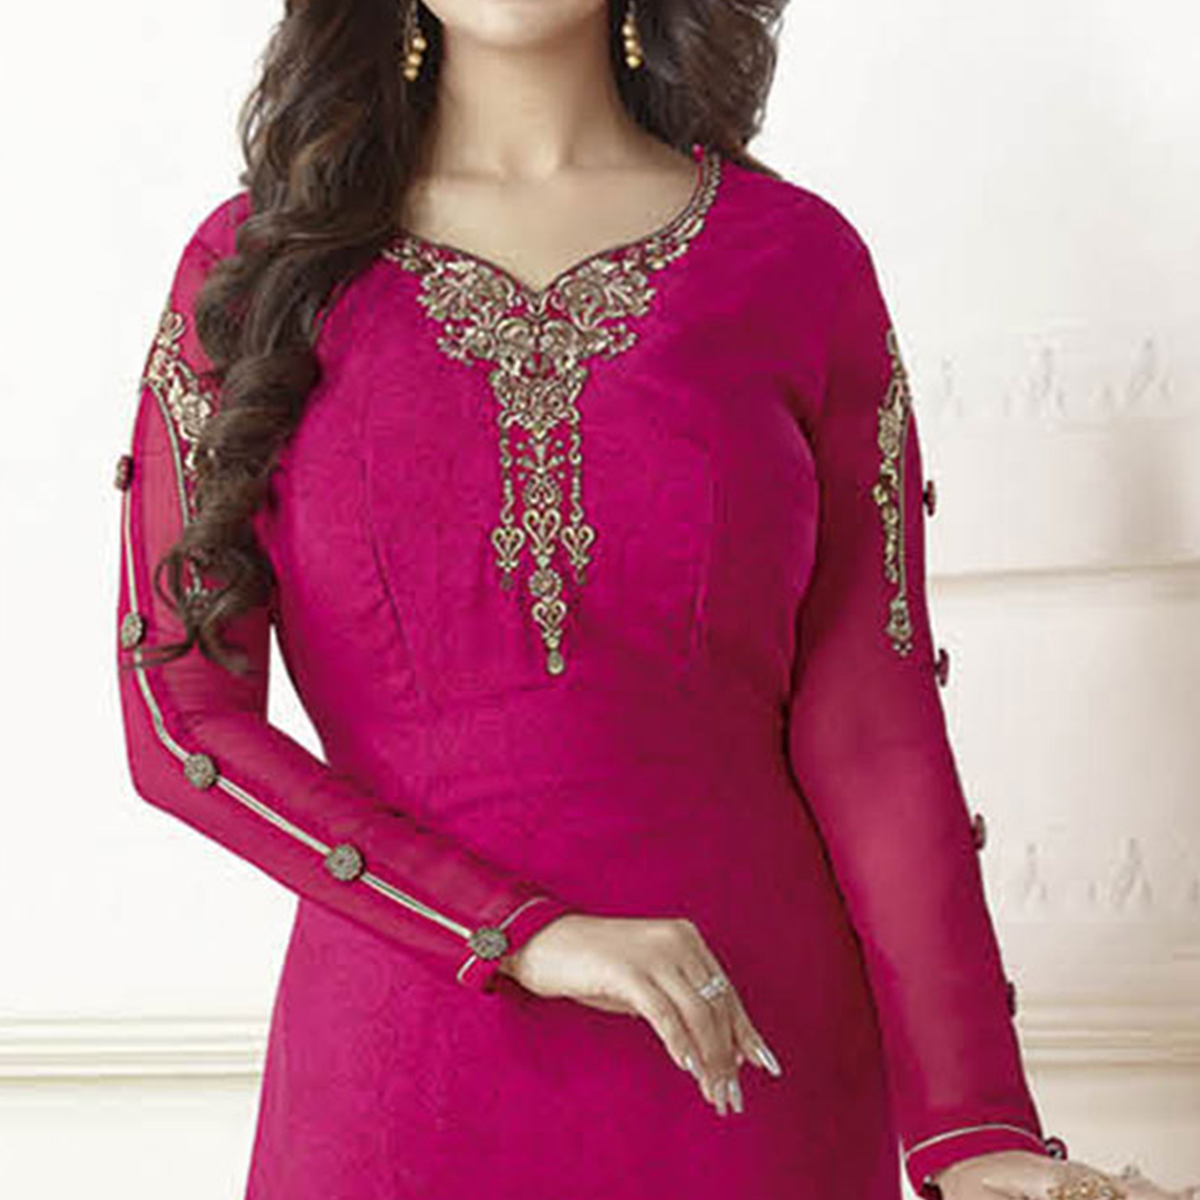 Mesmerizing Magenta Pink French Crepe Suit